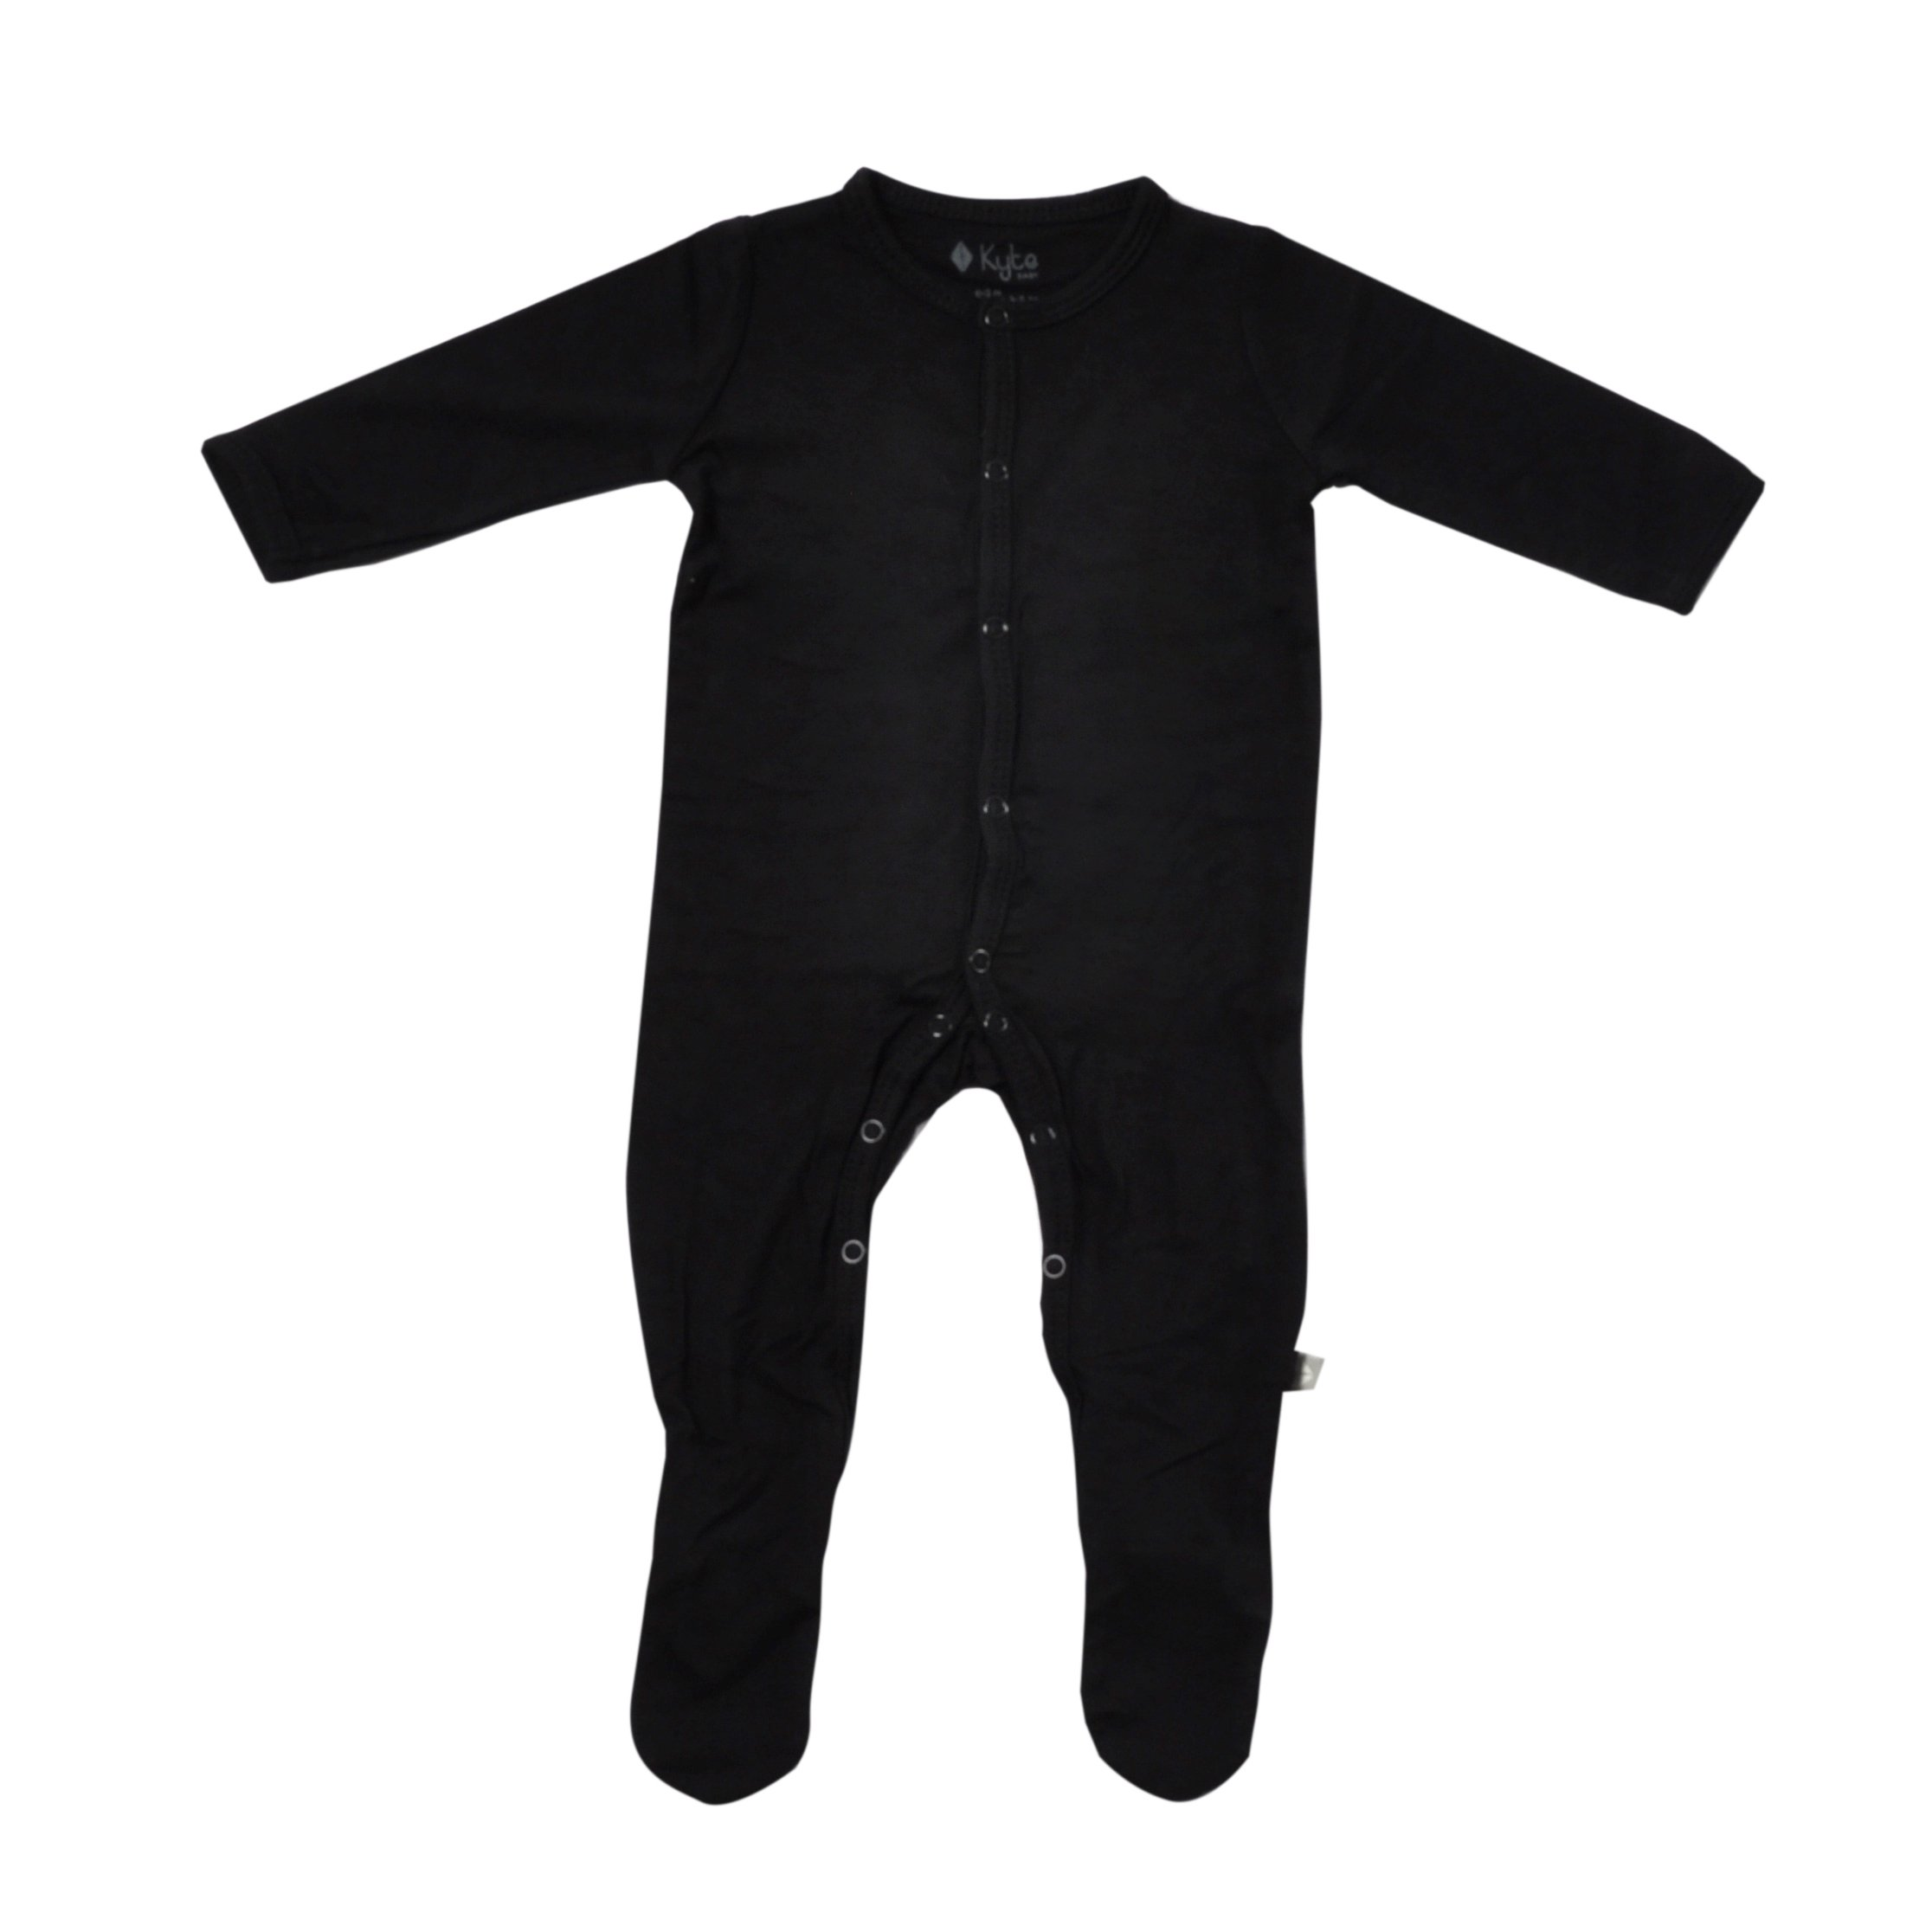 18fa05d29 Kyte BABY Footies - Baby Footed Pajamas Made of Soft Organic Bamboo ...